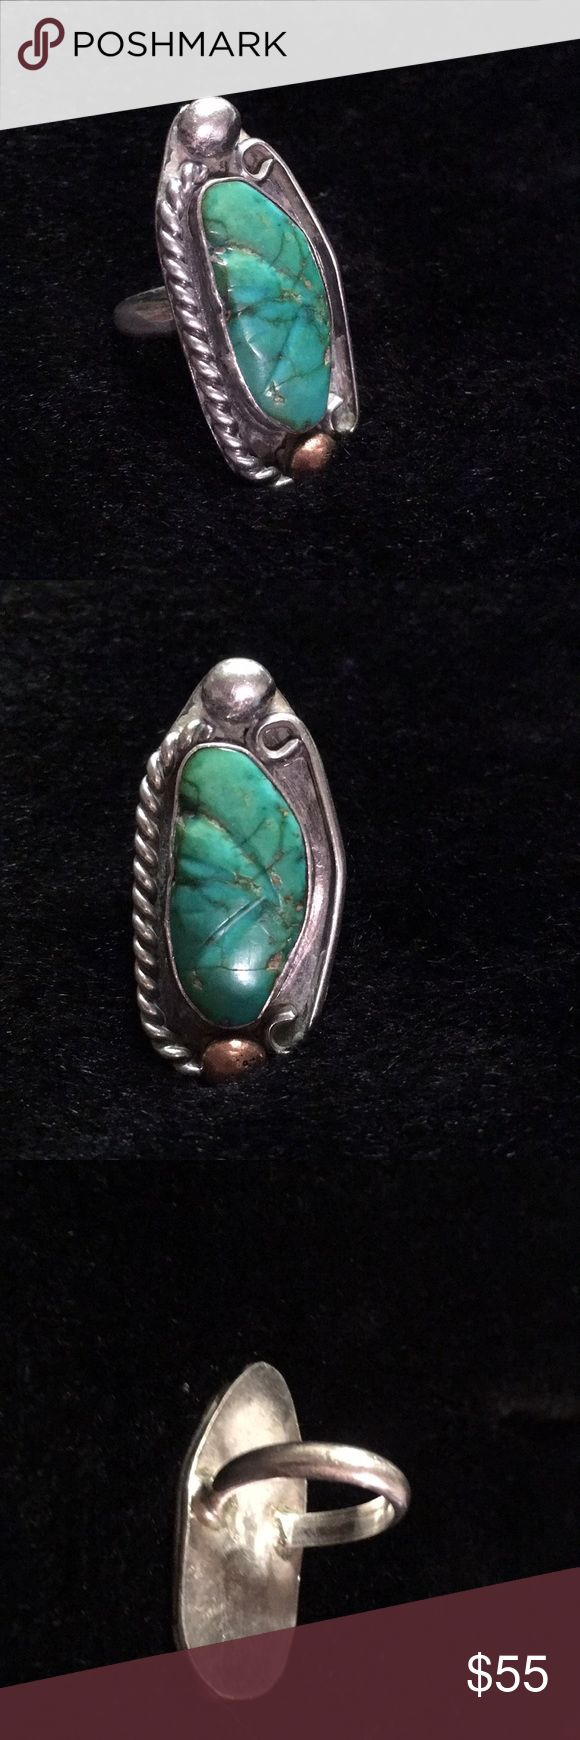 Vintage Southwestern Turquoise Gorgeous old turquoise ring that was sold to me as sterling silver and copper. Im inexperienced with testing but presumably its testing positive for me. At any rate its definitely a beautiful old ring with a lovely stone and Id love to see it go to a home where it would get more attention than I have provided. Very boho/hippie chick! Jewelry Rings #SterlingSilverBoho